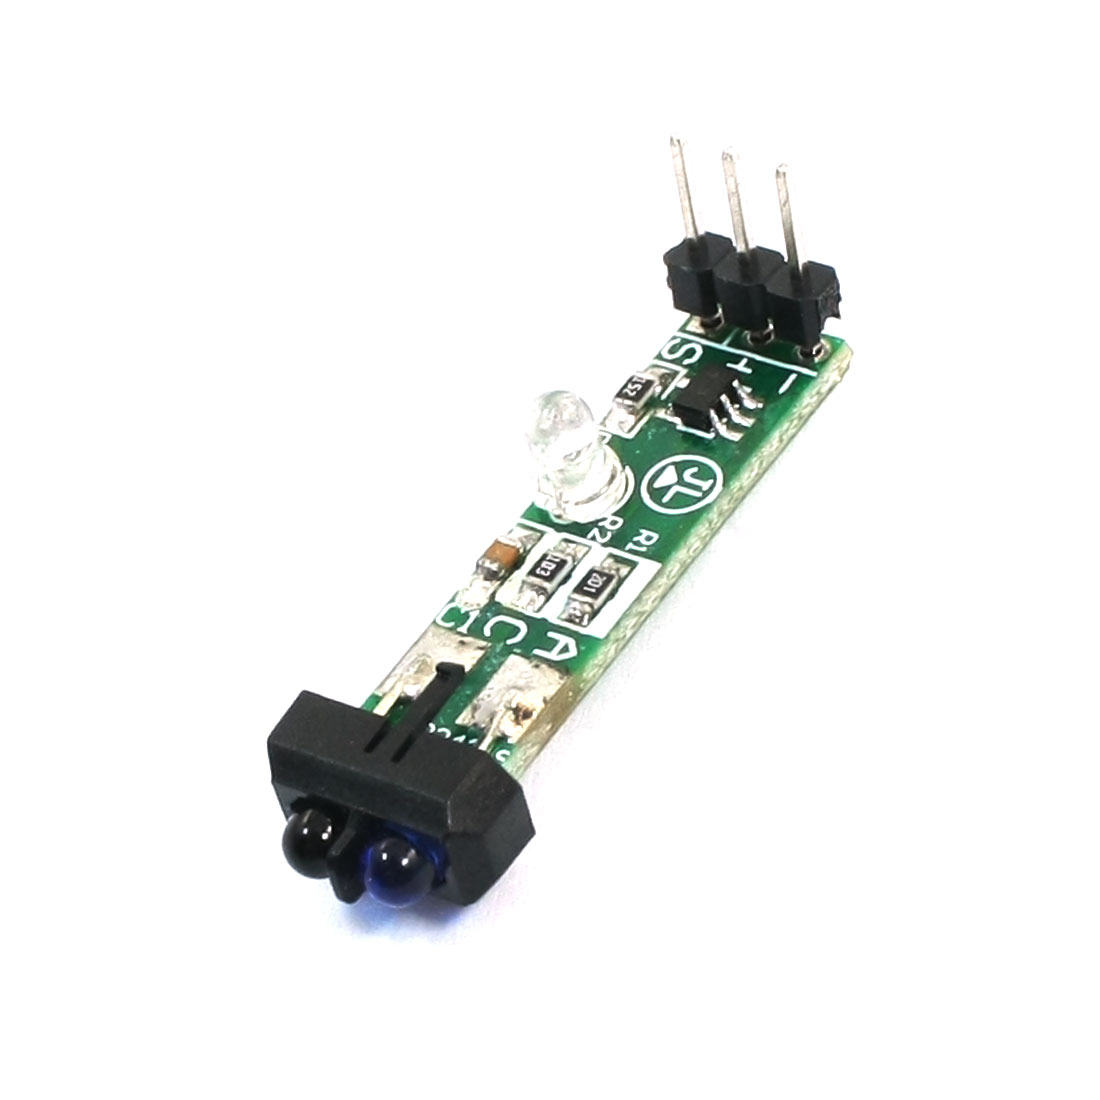 Infrared Reflection TCRT5000 Proximity Switches Sensor Module